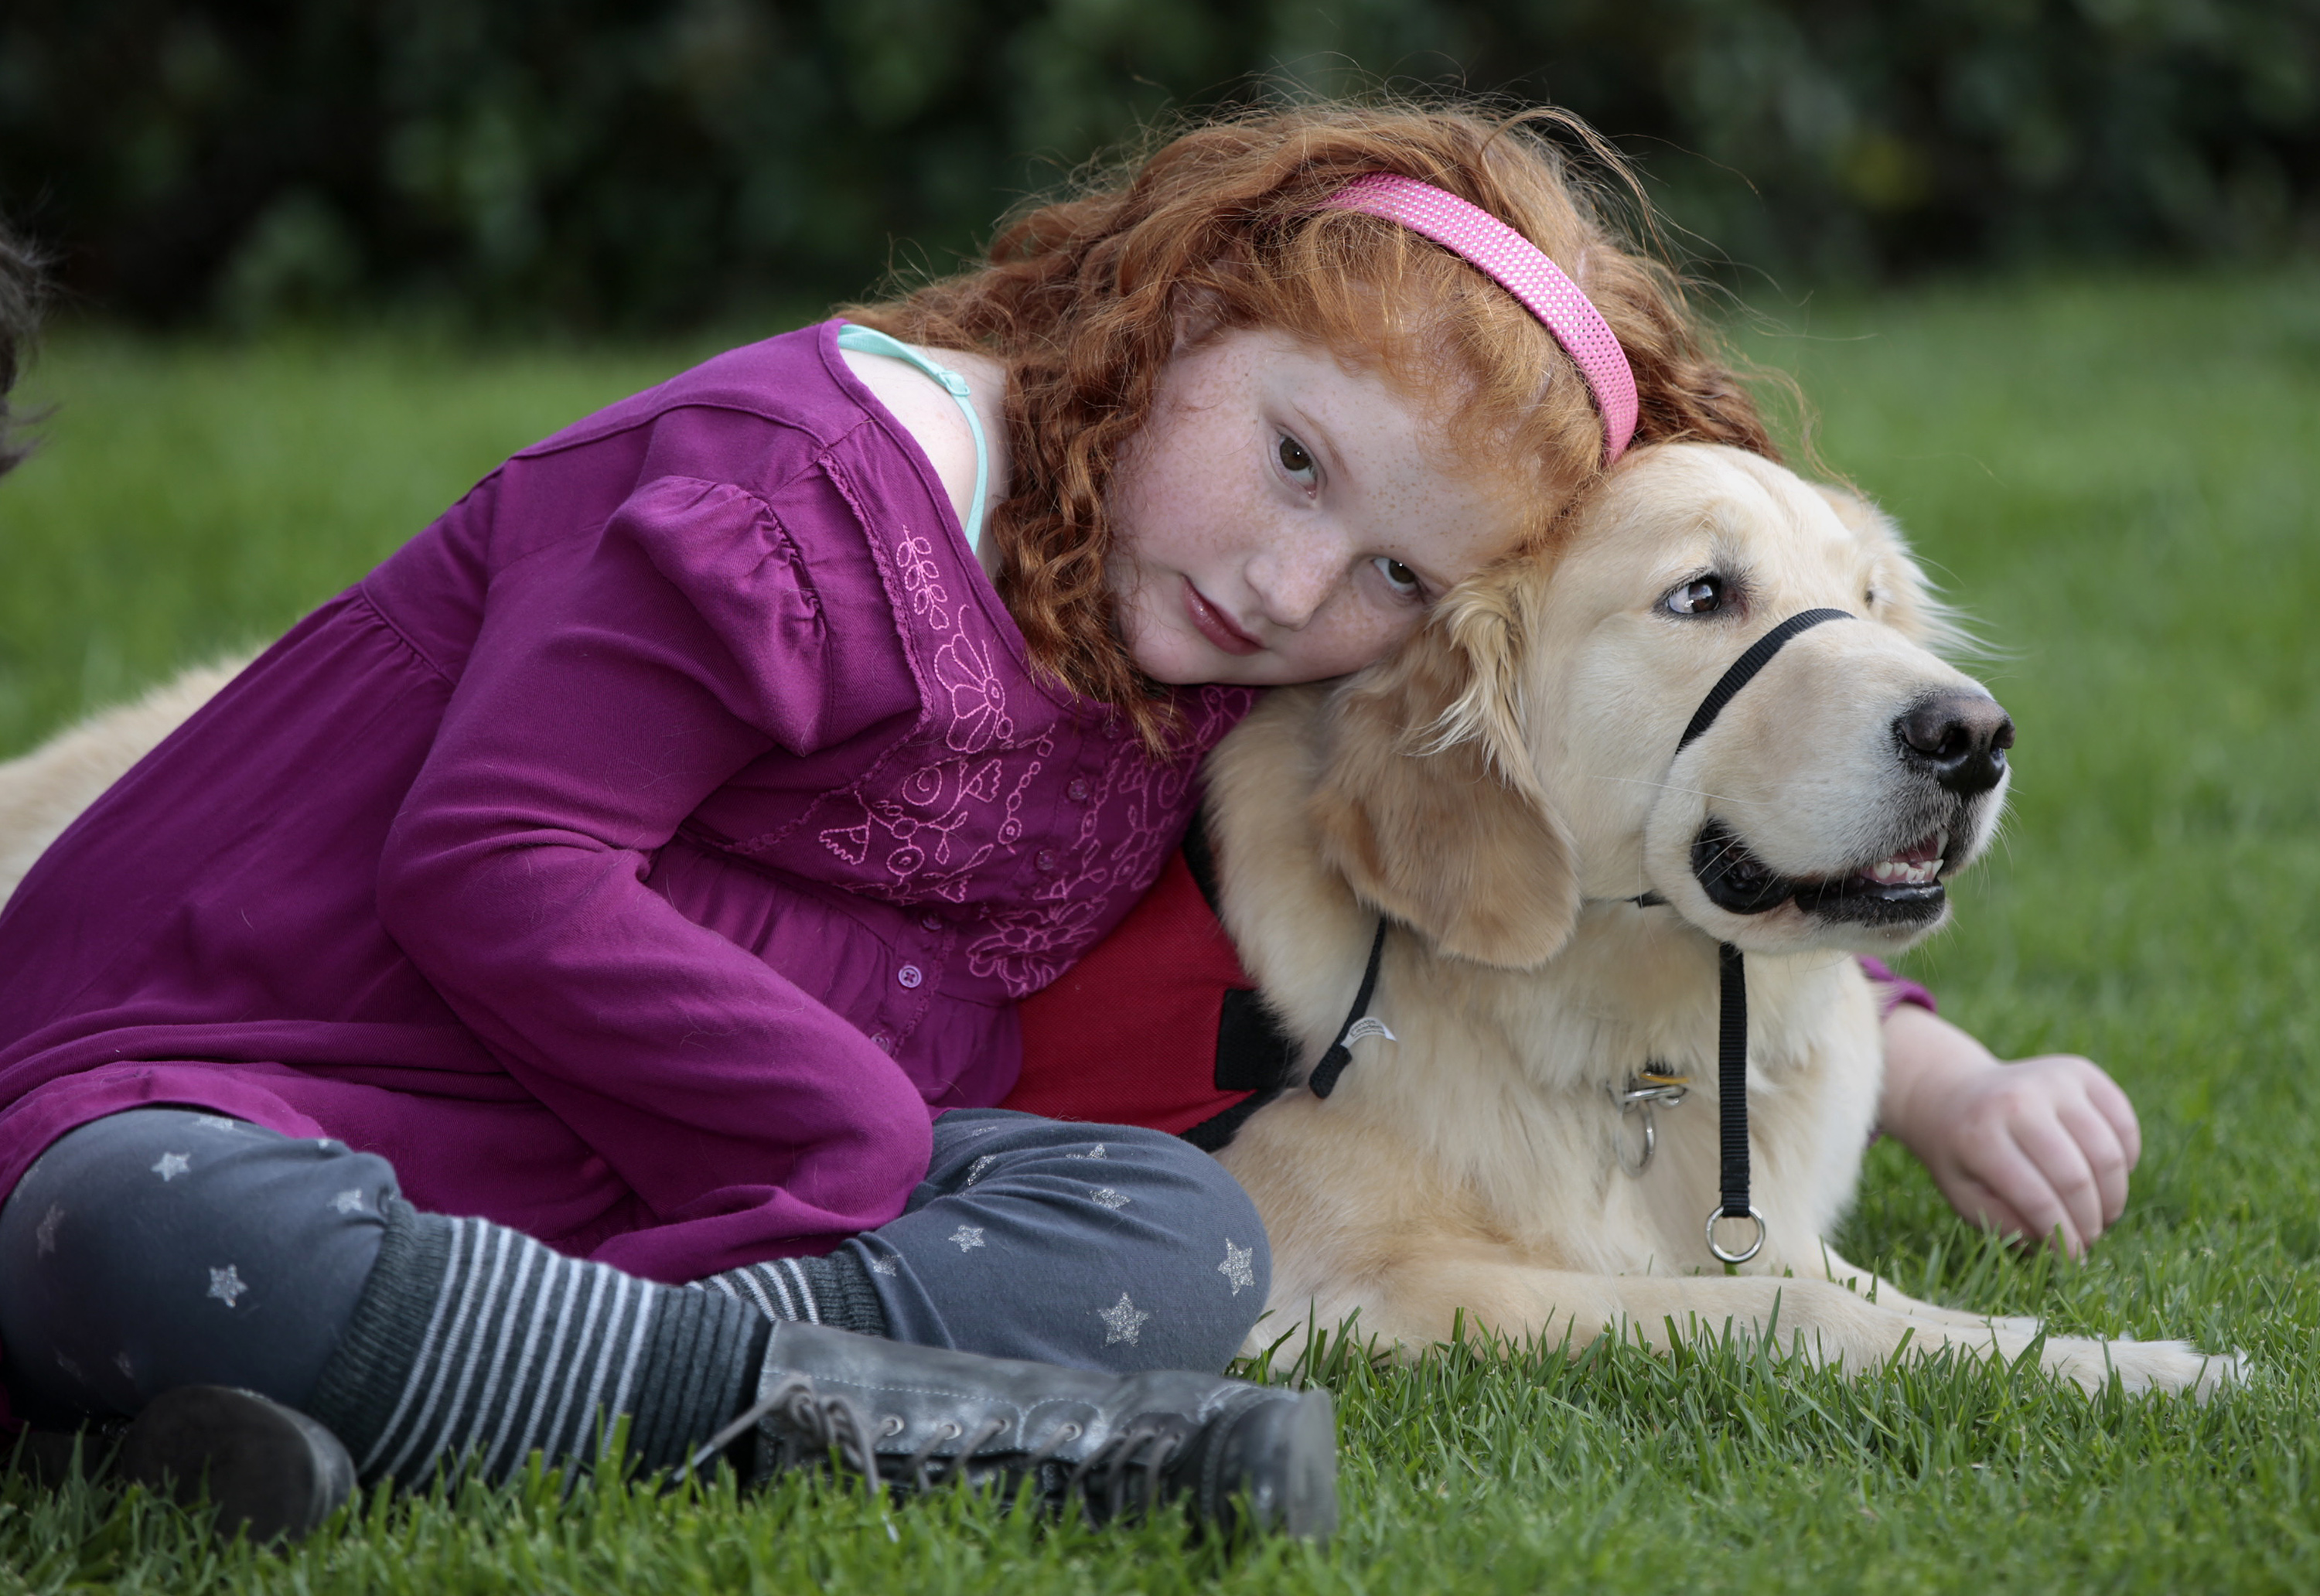 What To Give A Dog For Seizures